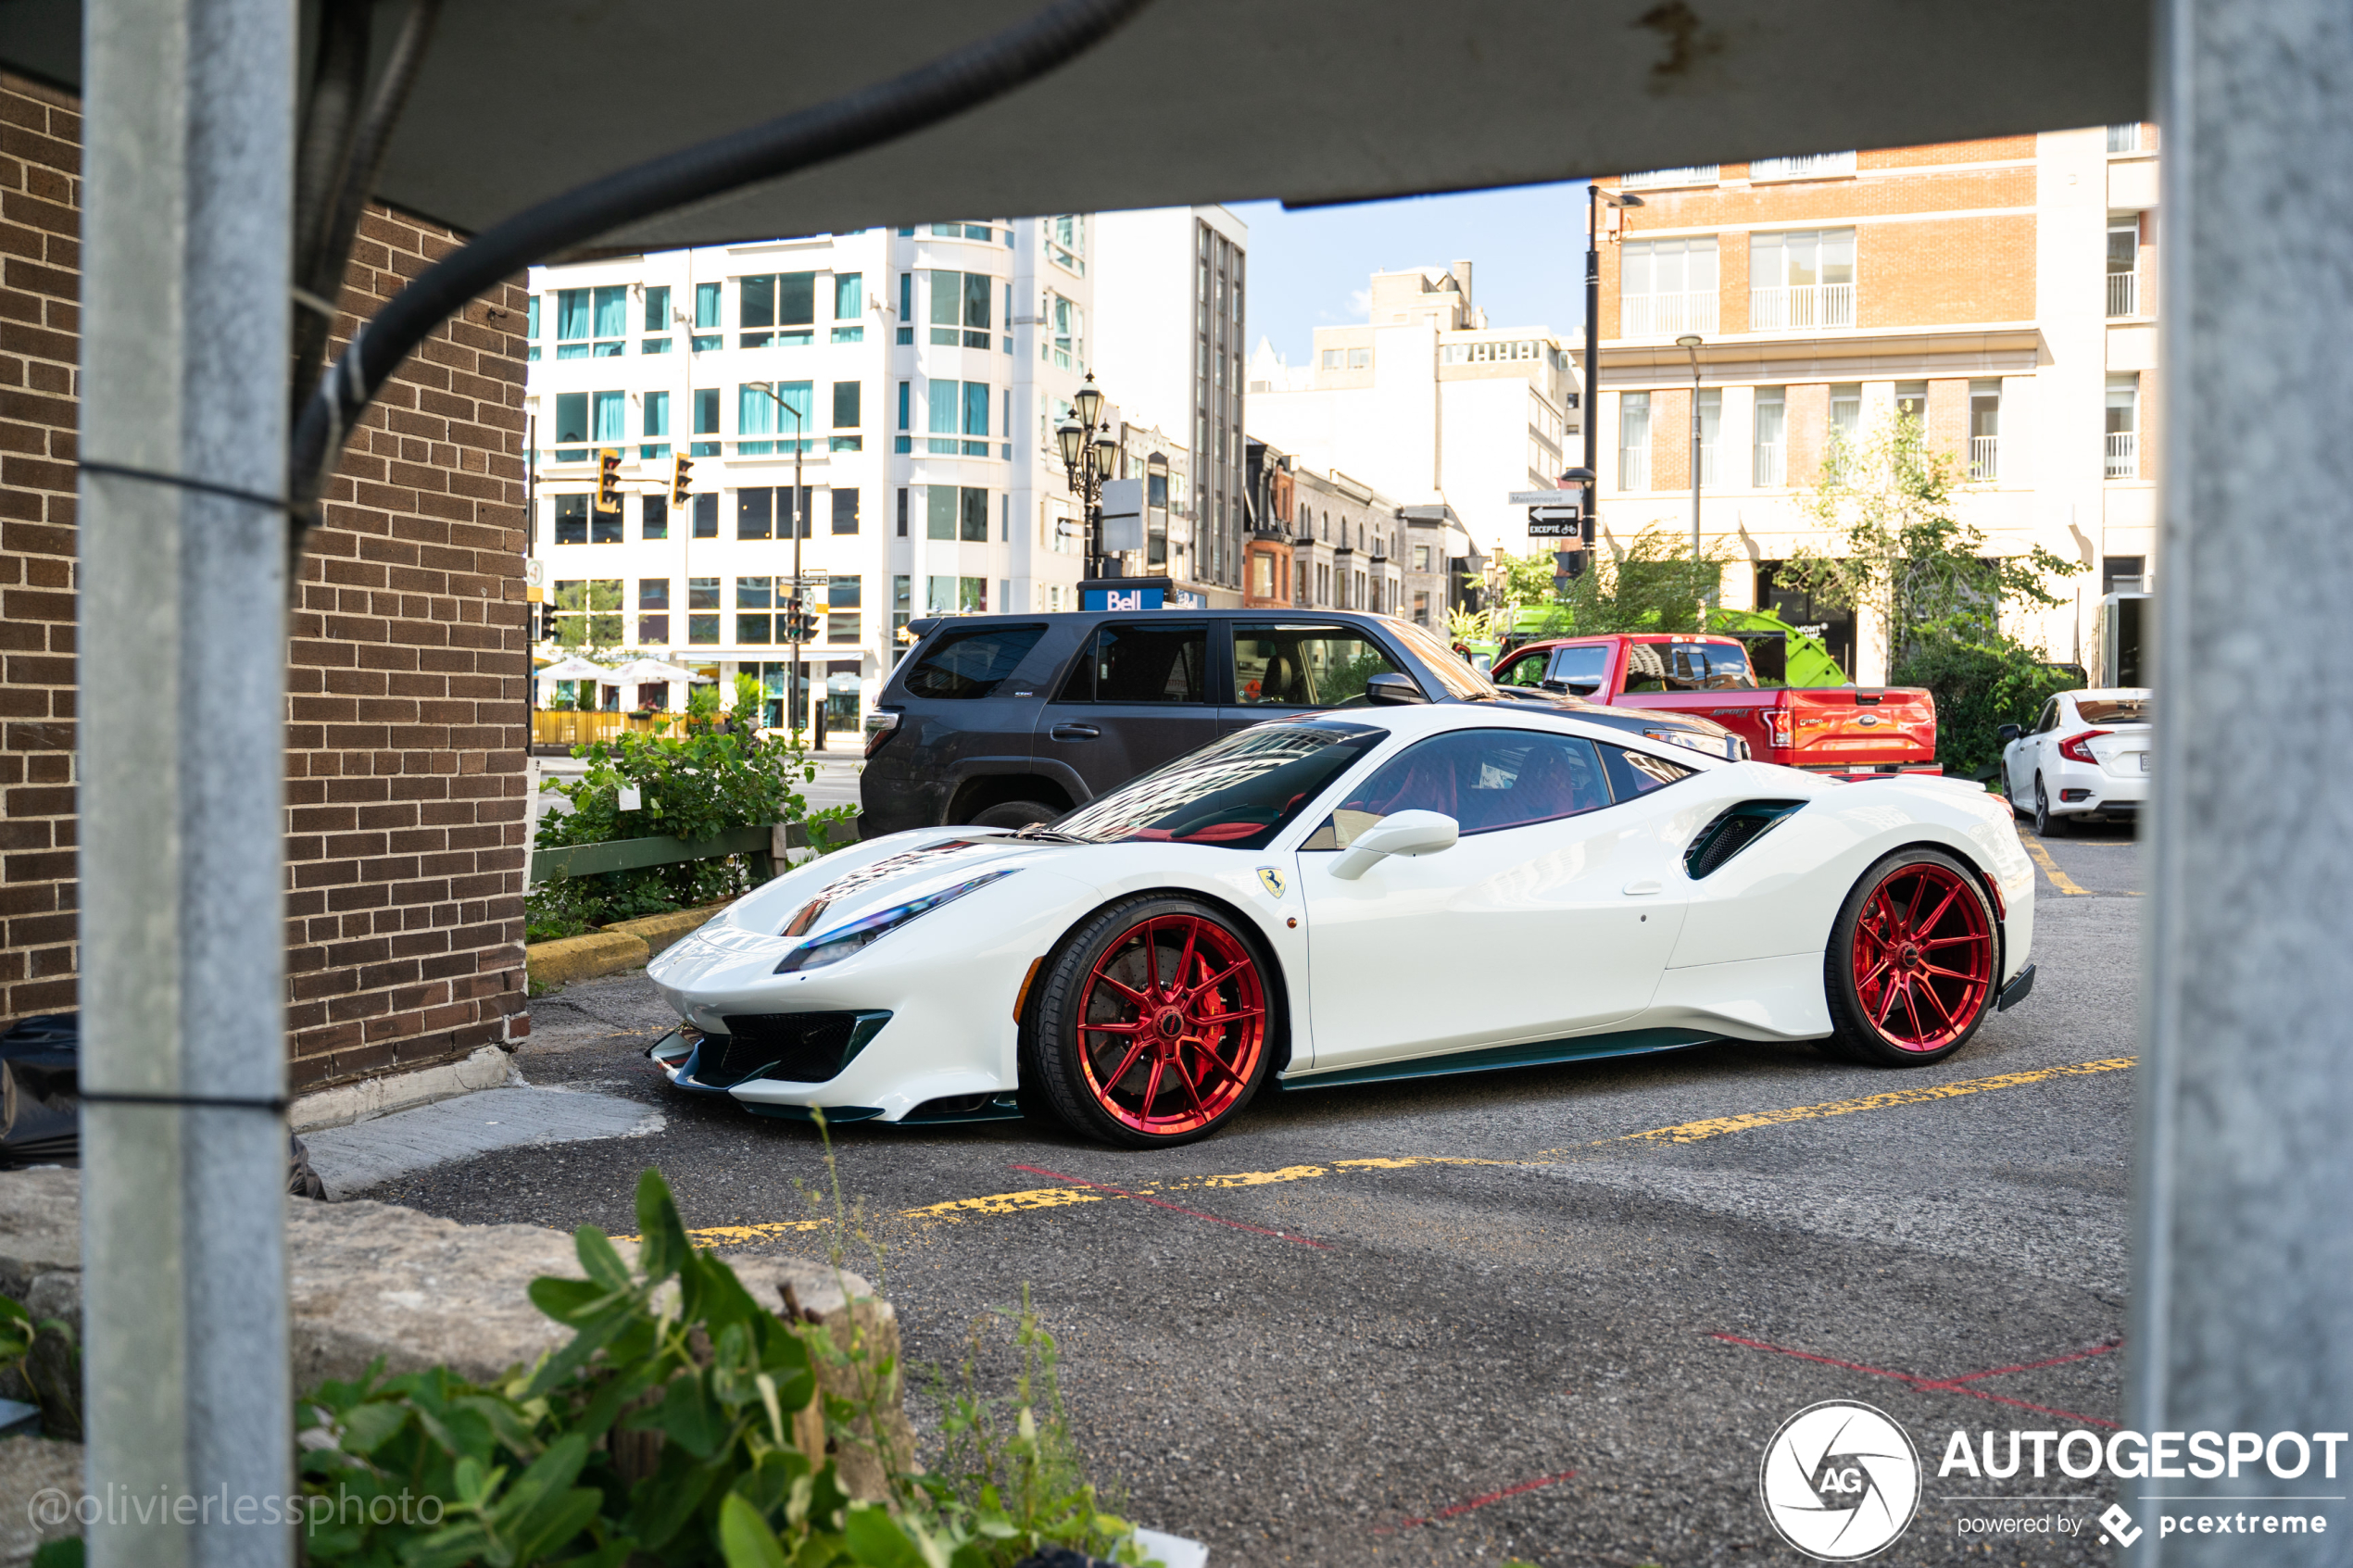 Ferrari 488 Pista wearing the Christmas colors